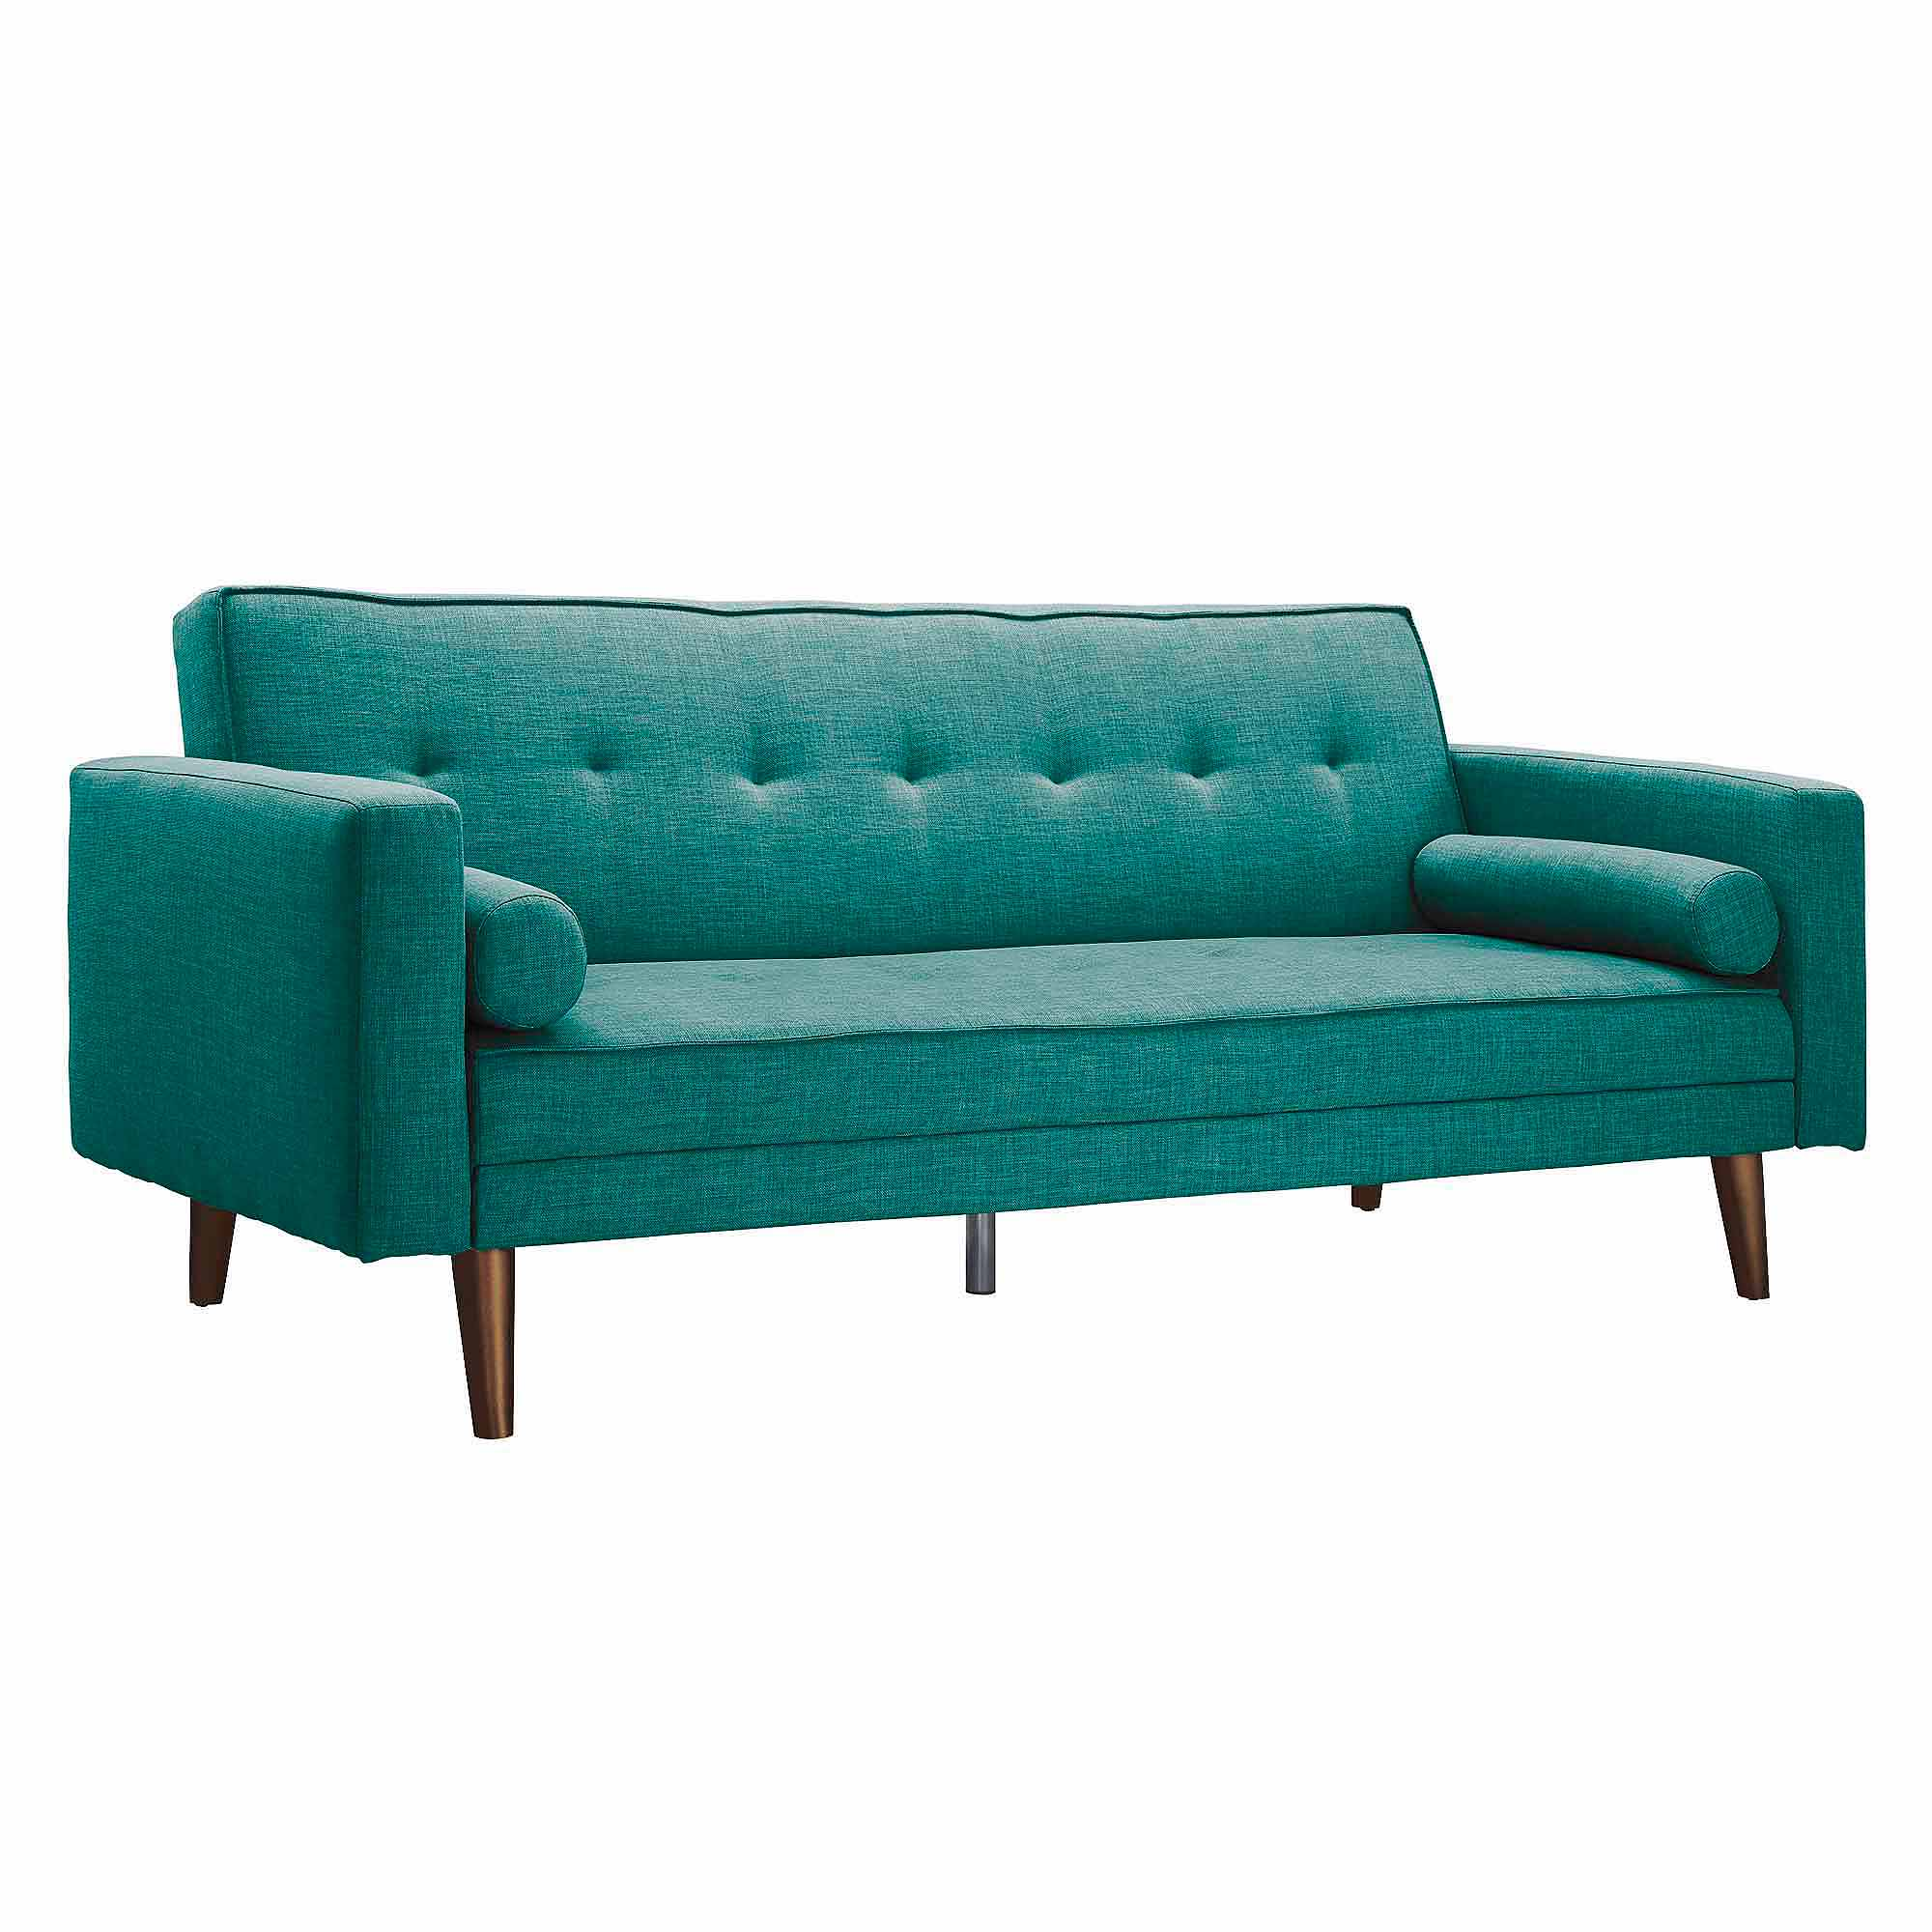 Retro Futon Home Decor